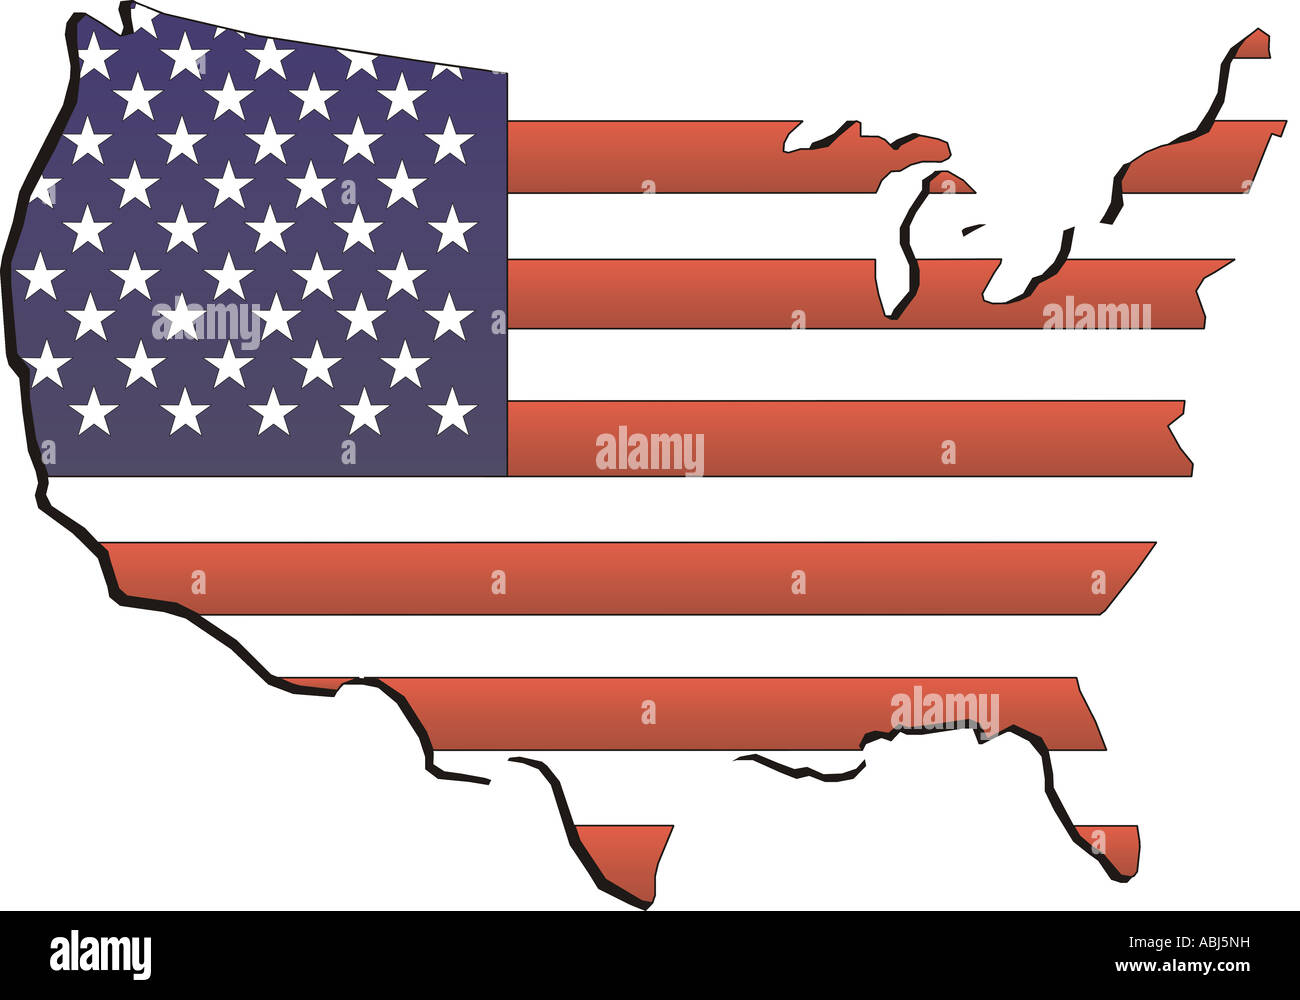 American  flag composited on drawing on the United States - Stock Image